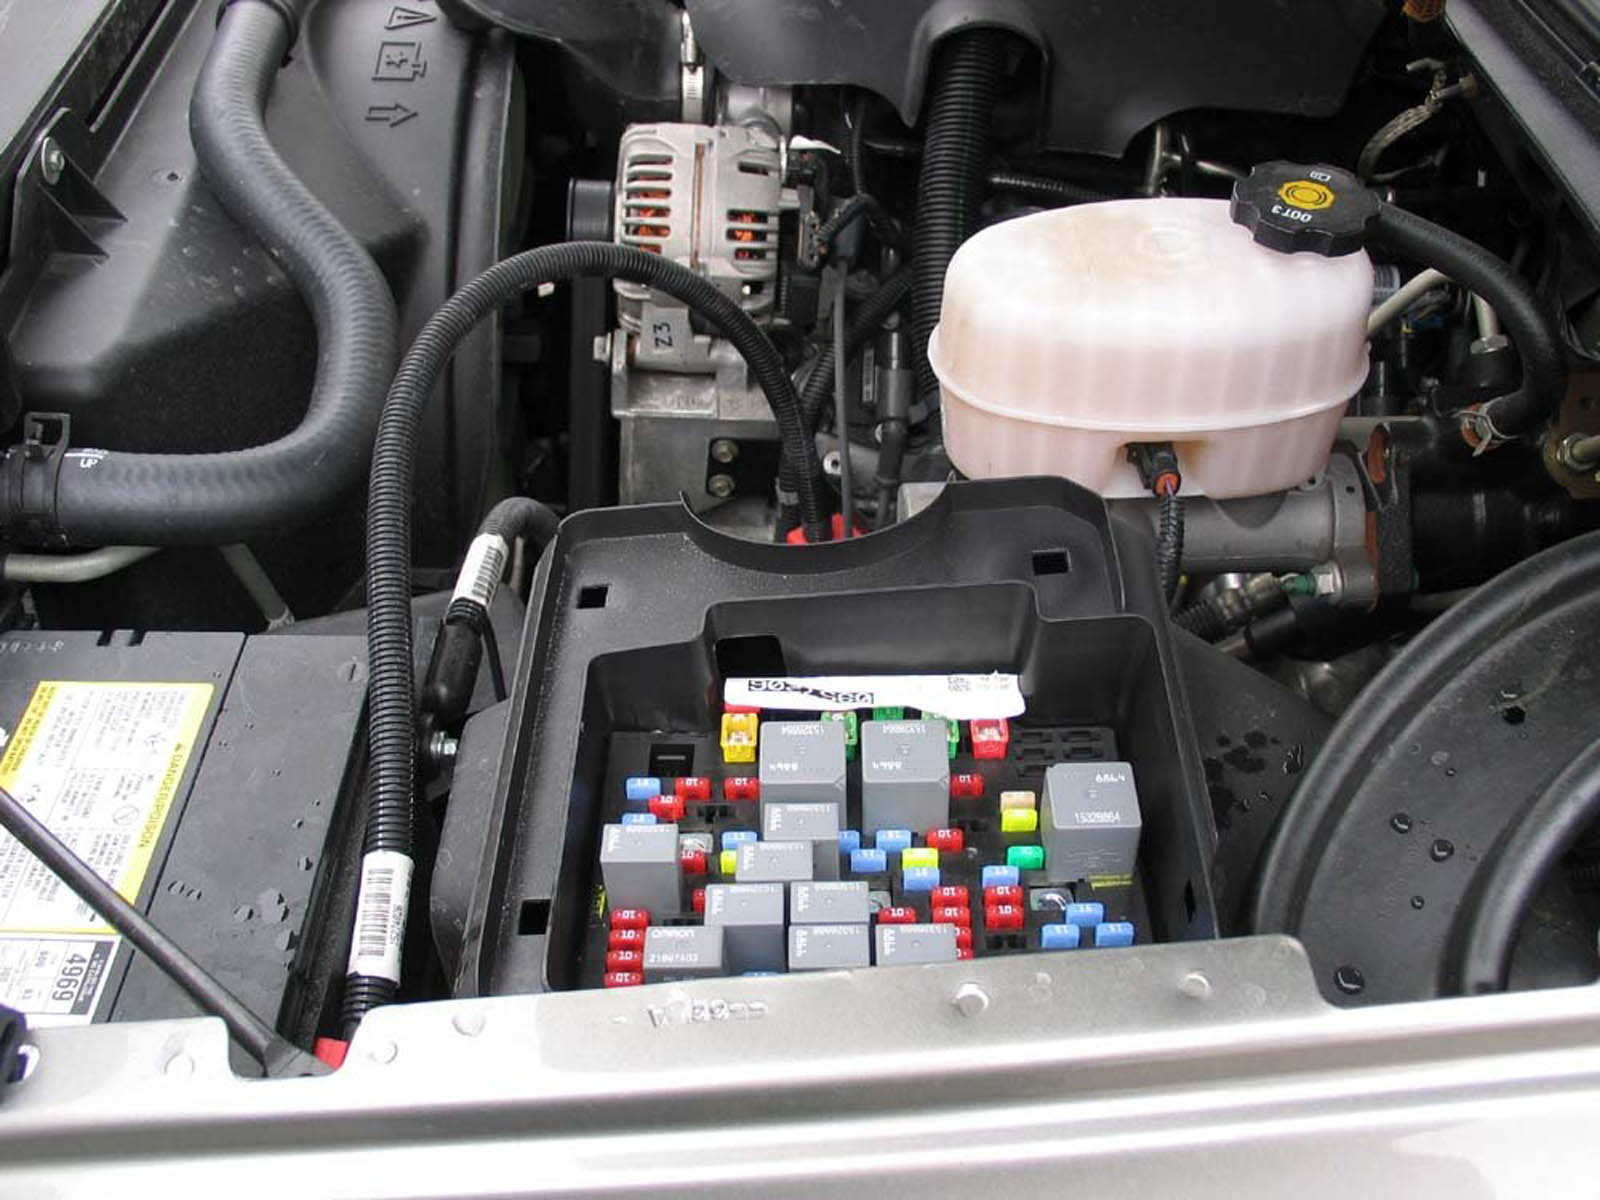 MMMay 27 Fuse Box 04 69845 chevrolet silverado gmt800 1999 2006 fuse box diagram chevroletforum 2003 chevy silverado fuse box diagram at arjmand.co